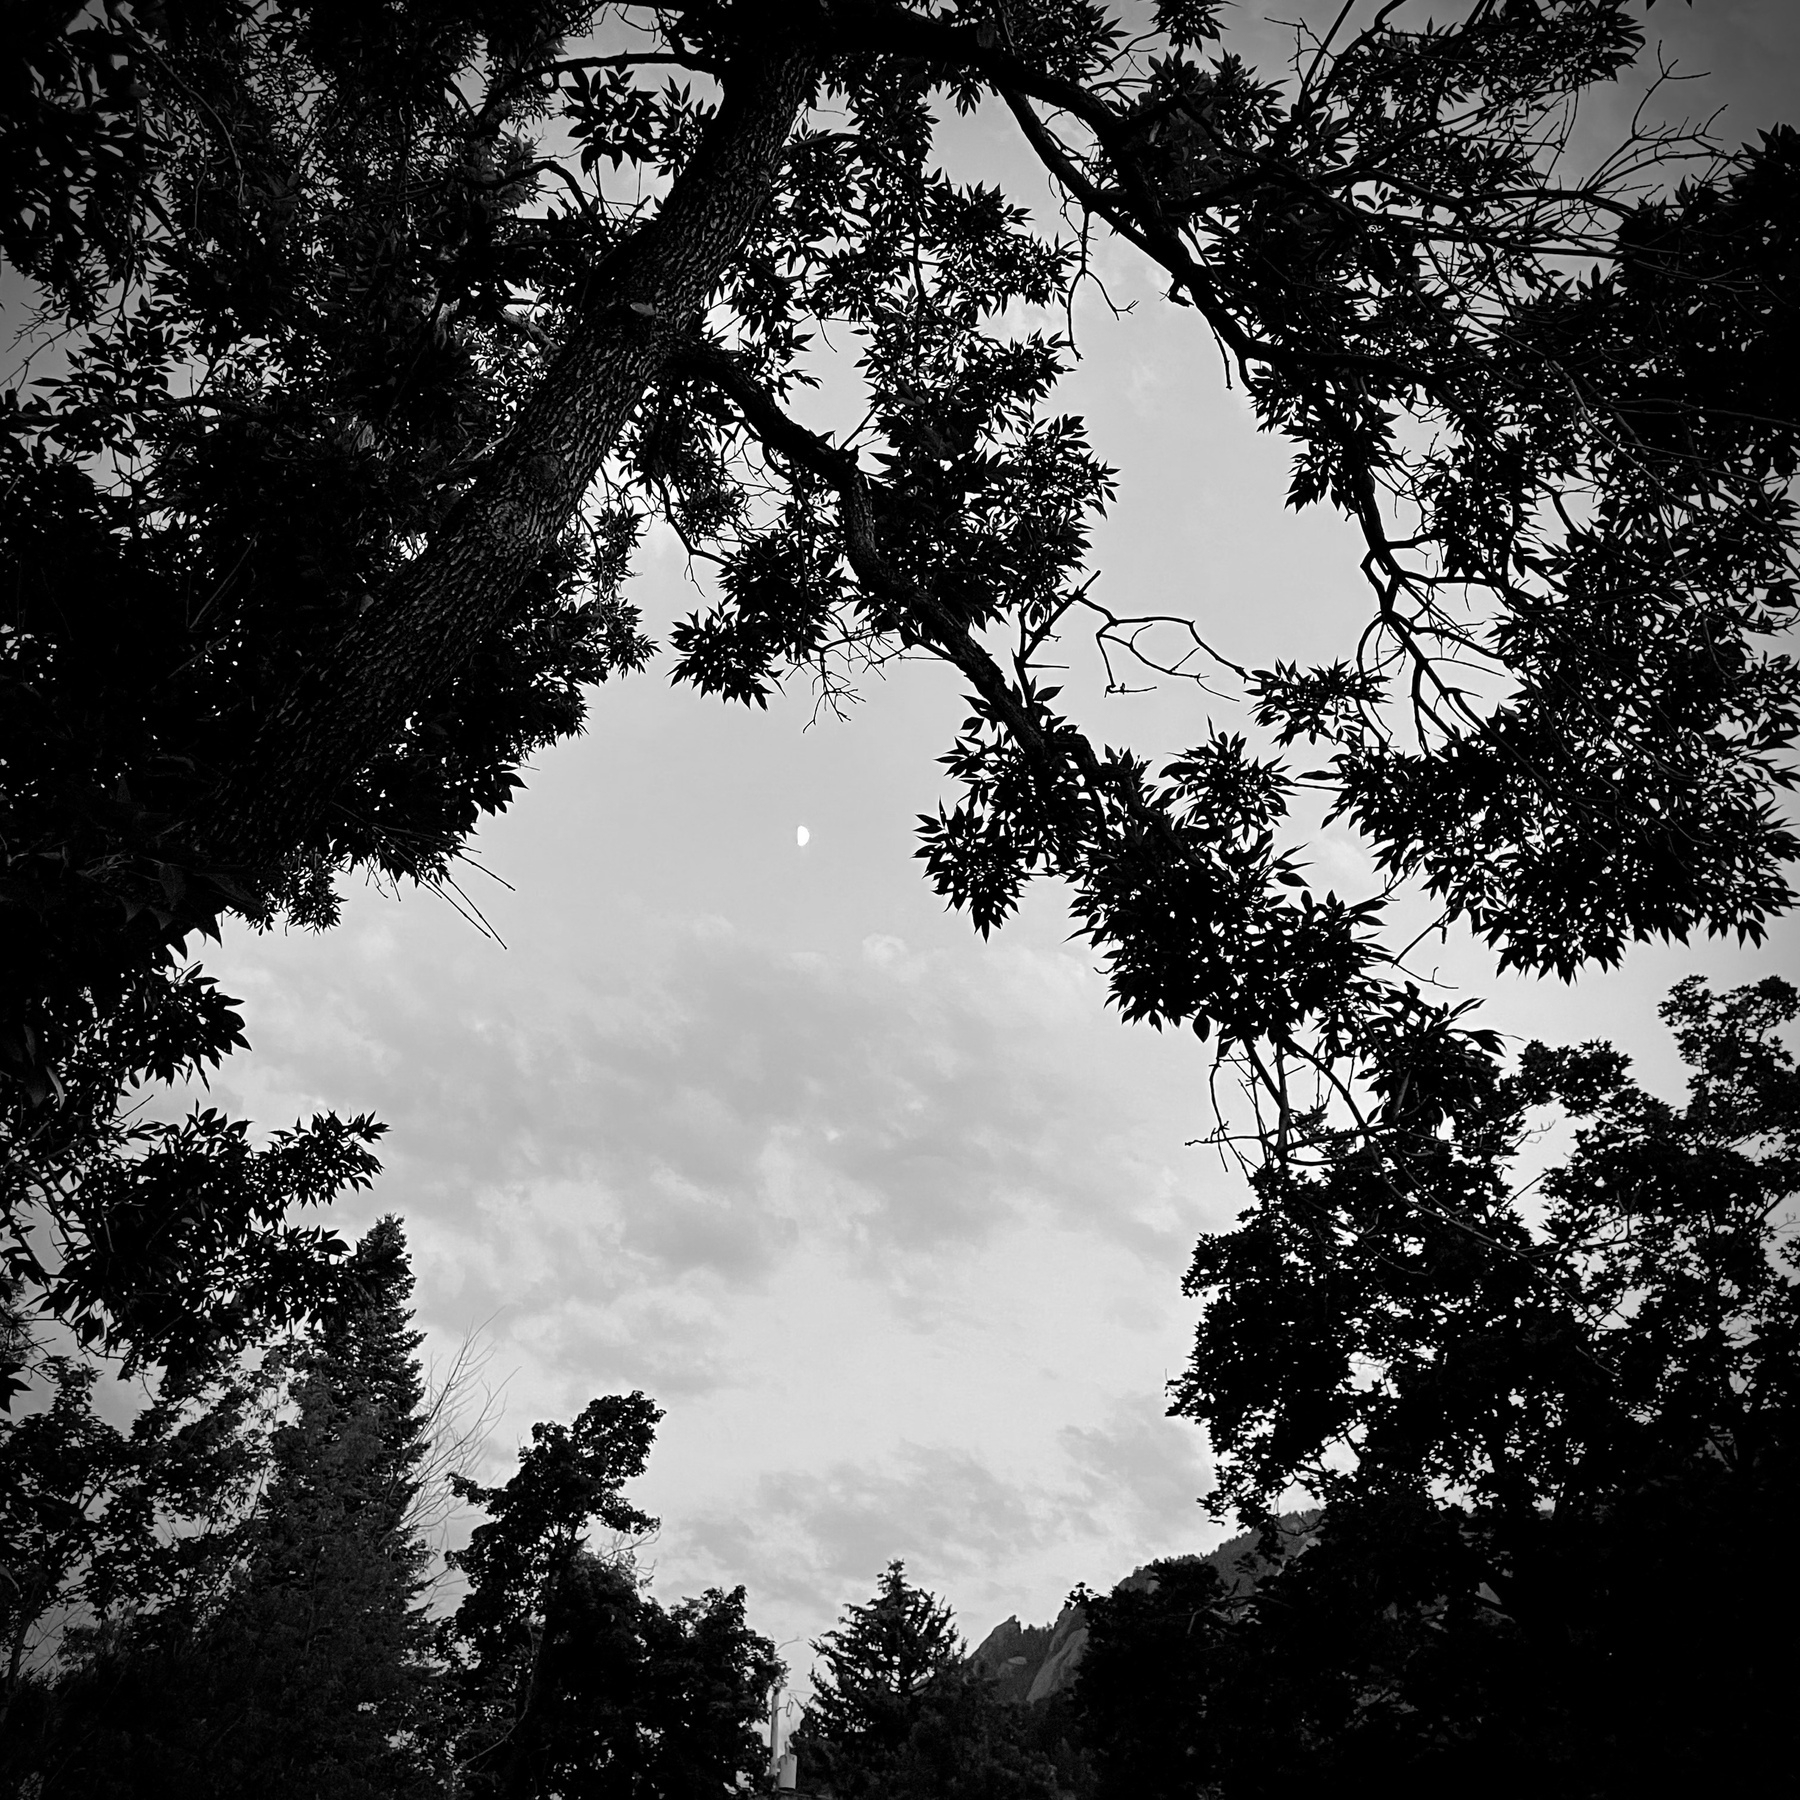 Evening trees before a cloudy sky, black and white.